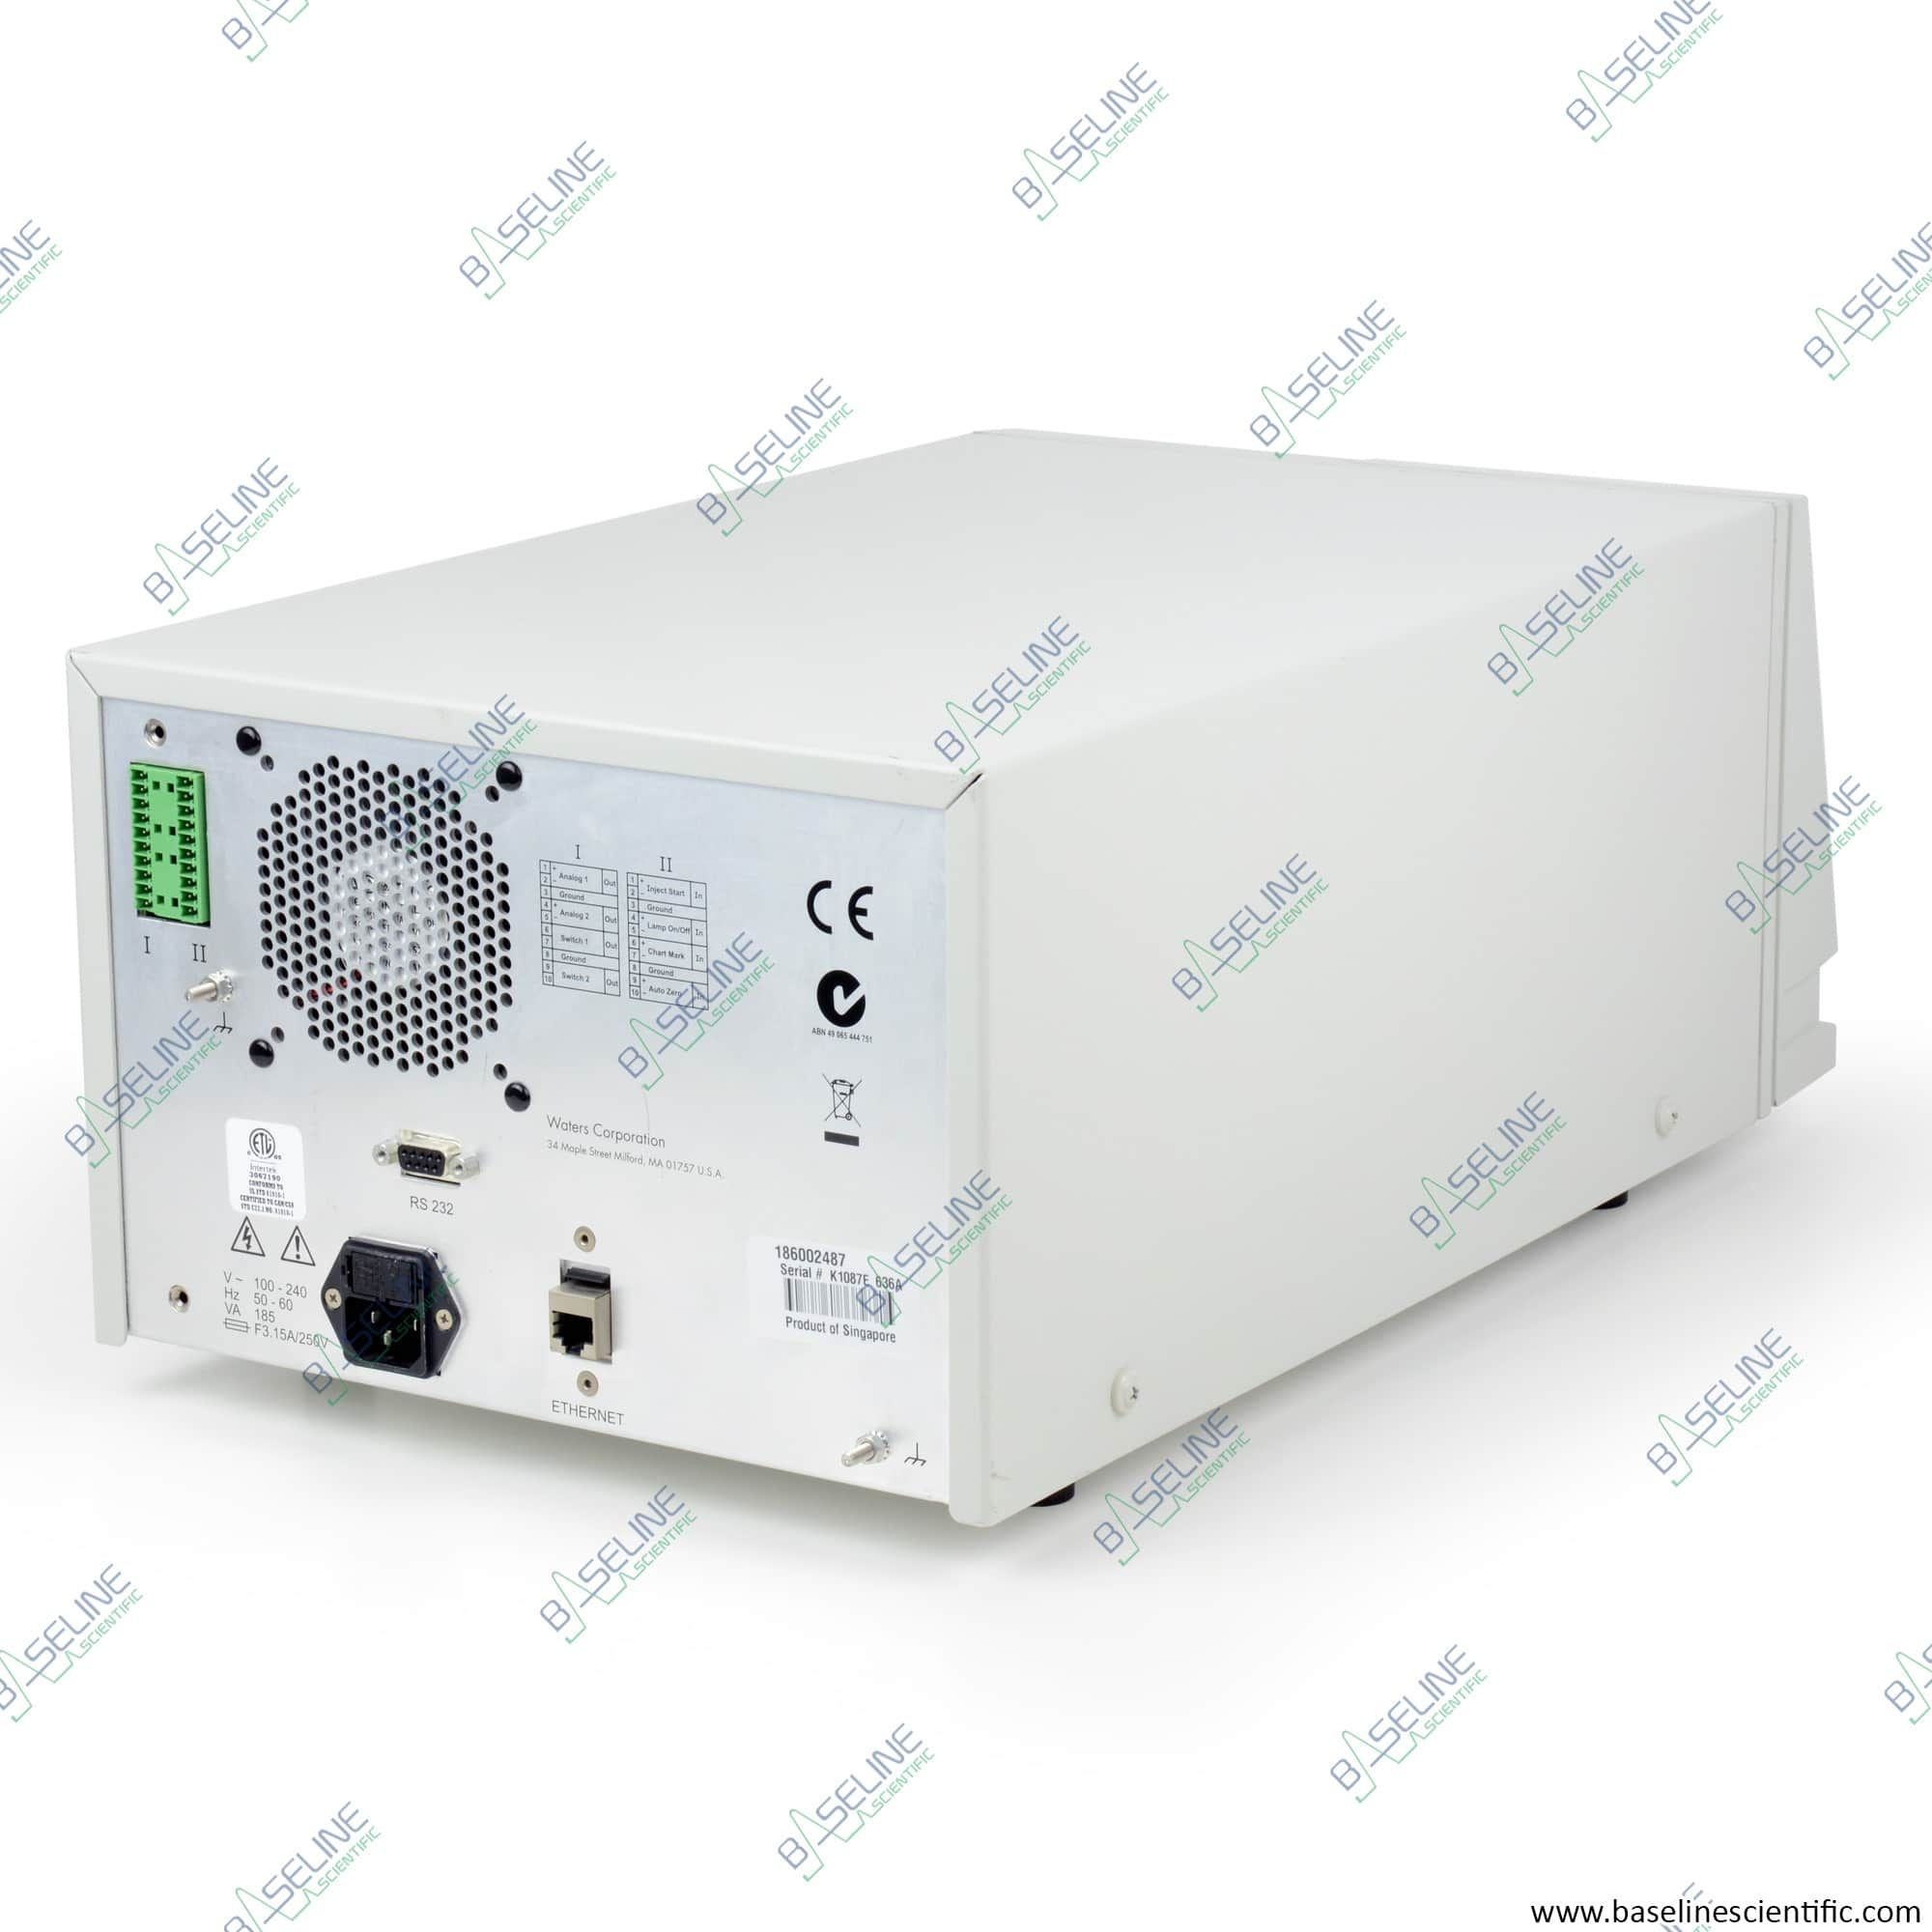 Refurbished Waters 2489 Dual Absorbance Detector with ONE YEAR WARRANTY